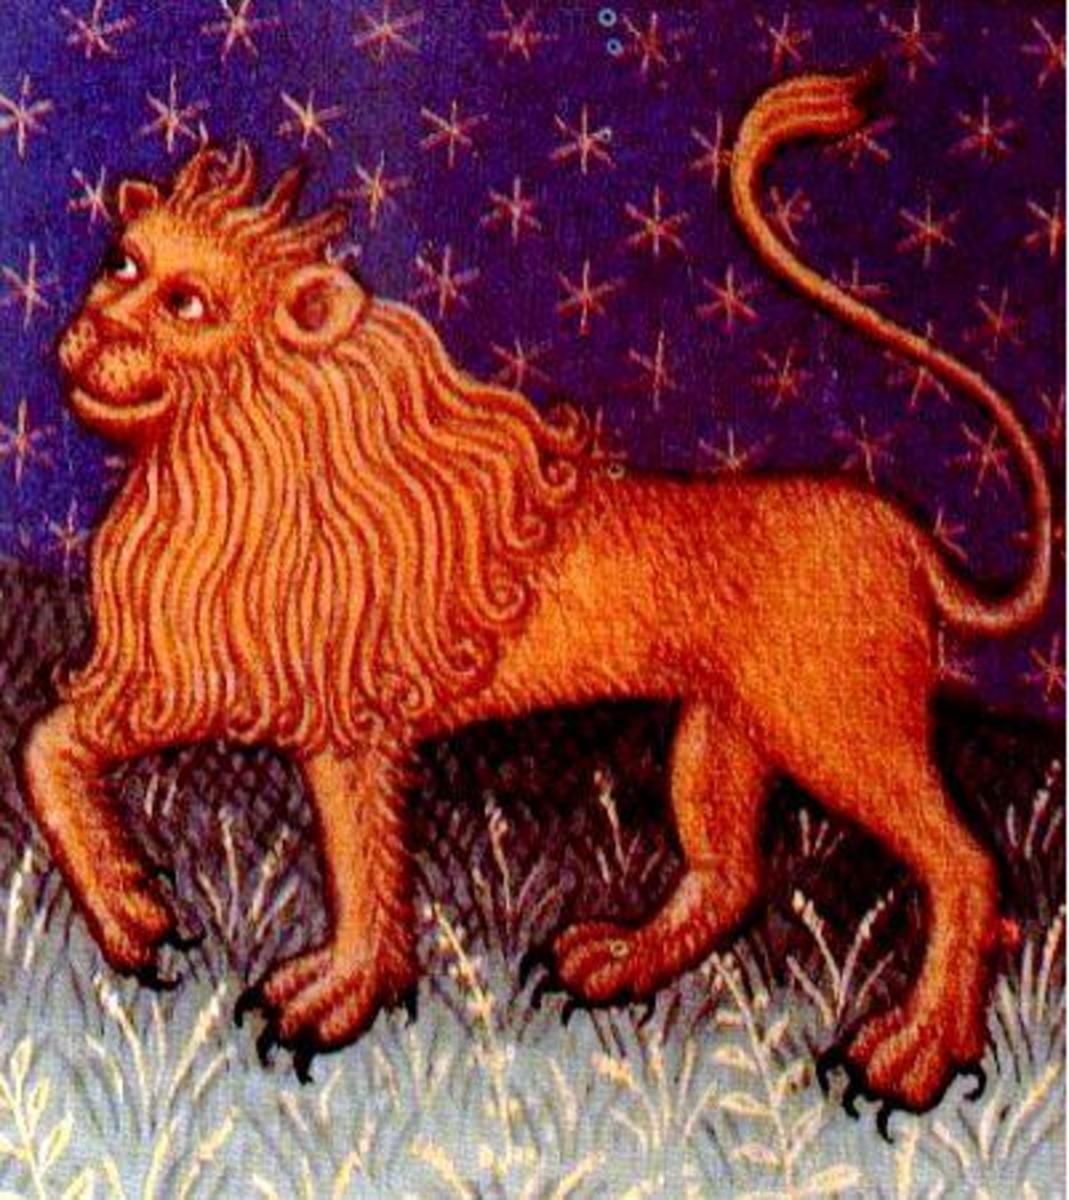 Leo the Lion.  The King of the jungle!  Those men with birthdays in Leo produce humans resembling the lion's appearance a bit, and are usually blonde or red haired.